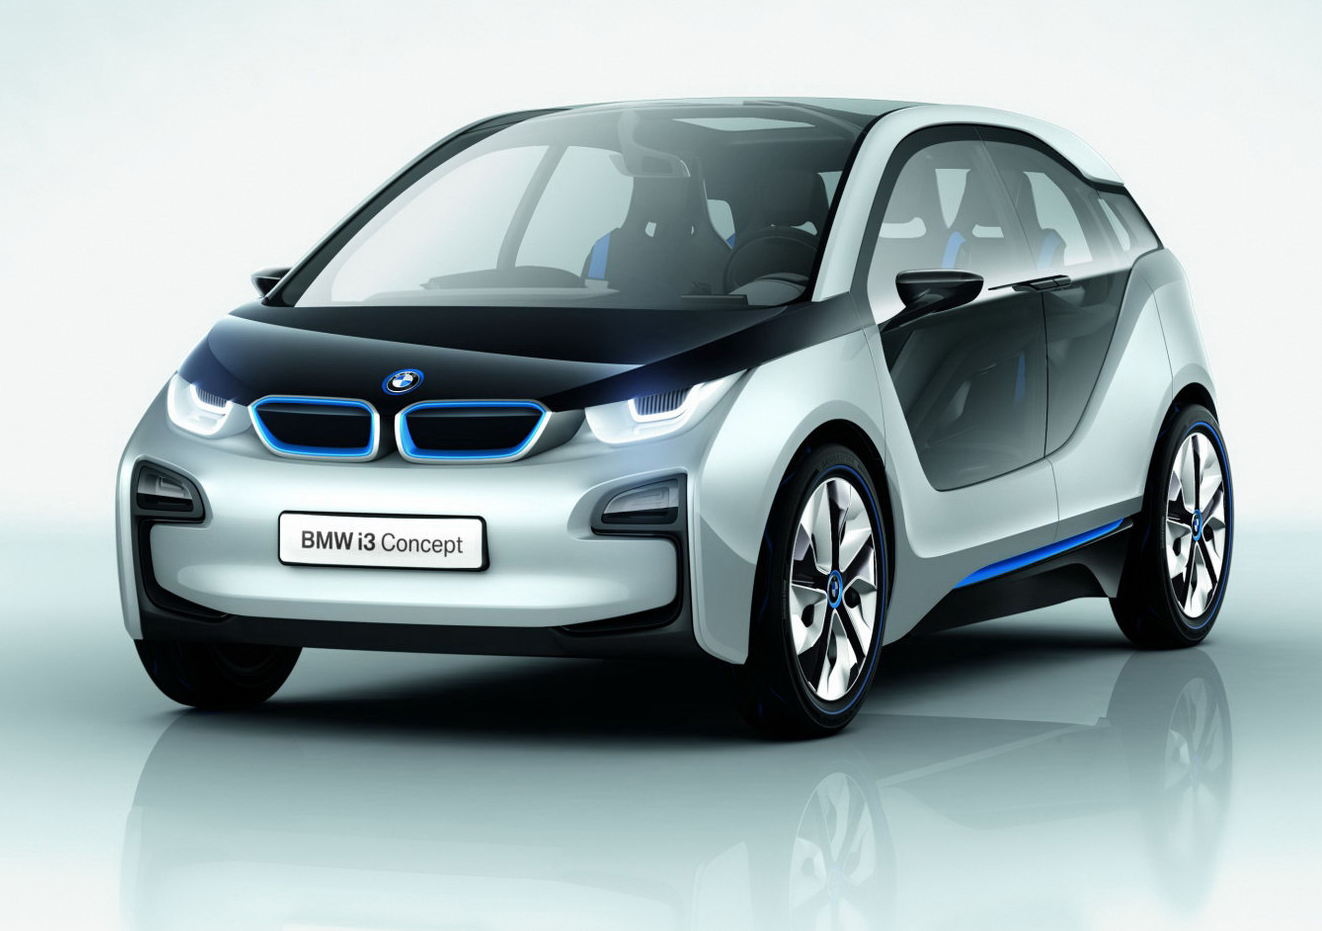 2013 bmw i3 concept car wallpapers bikes cars wallpapers. Black Bedroom Furniture Sets. Home Design Ideas